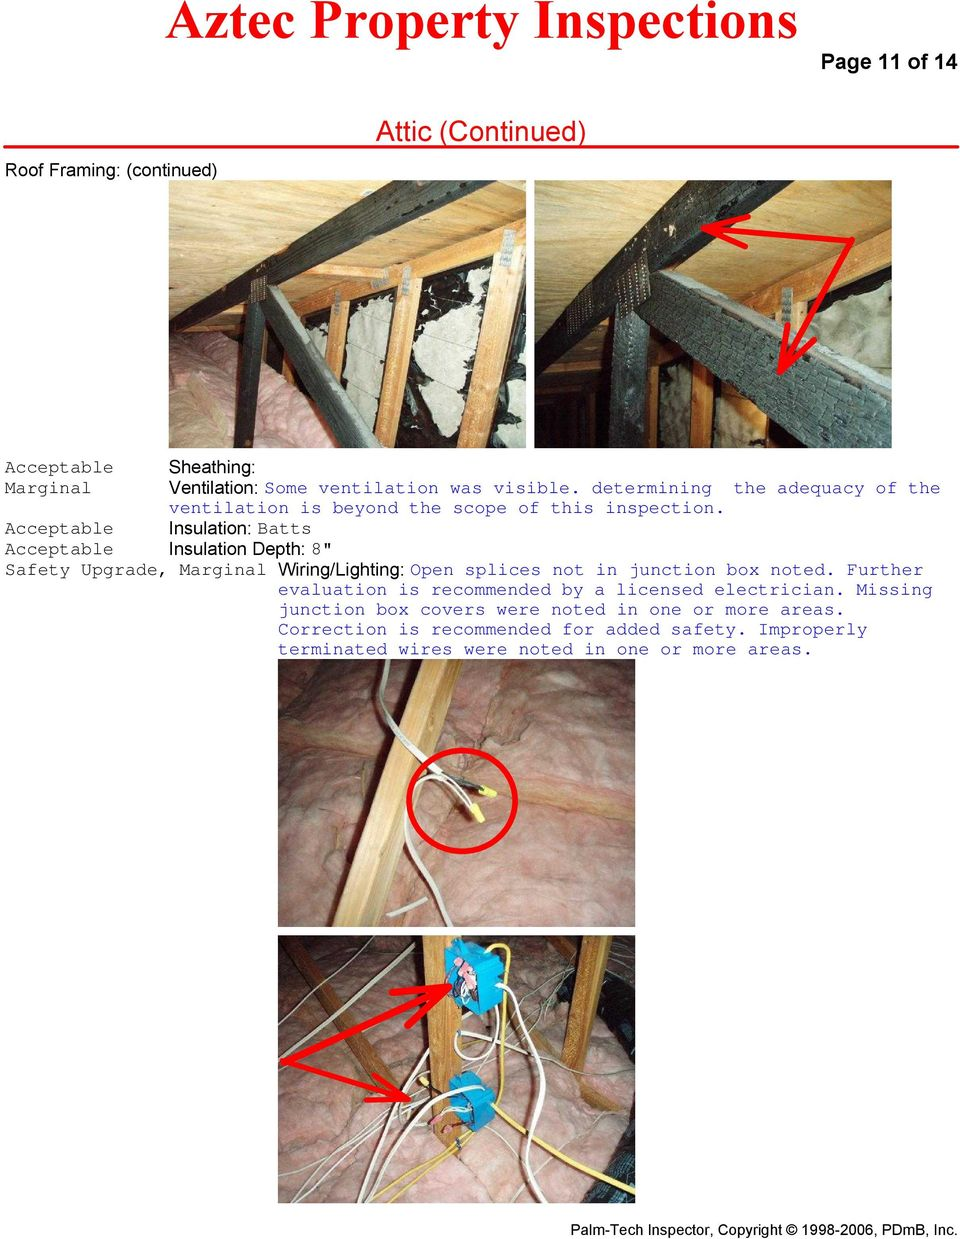 "Insulation: Batts Insulation Depth: 8"" Safety Upgrade, Marginal Wiring/Lighting: Open splices not in junction box noted."